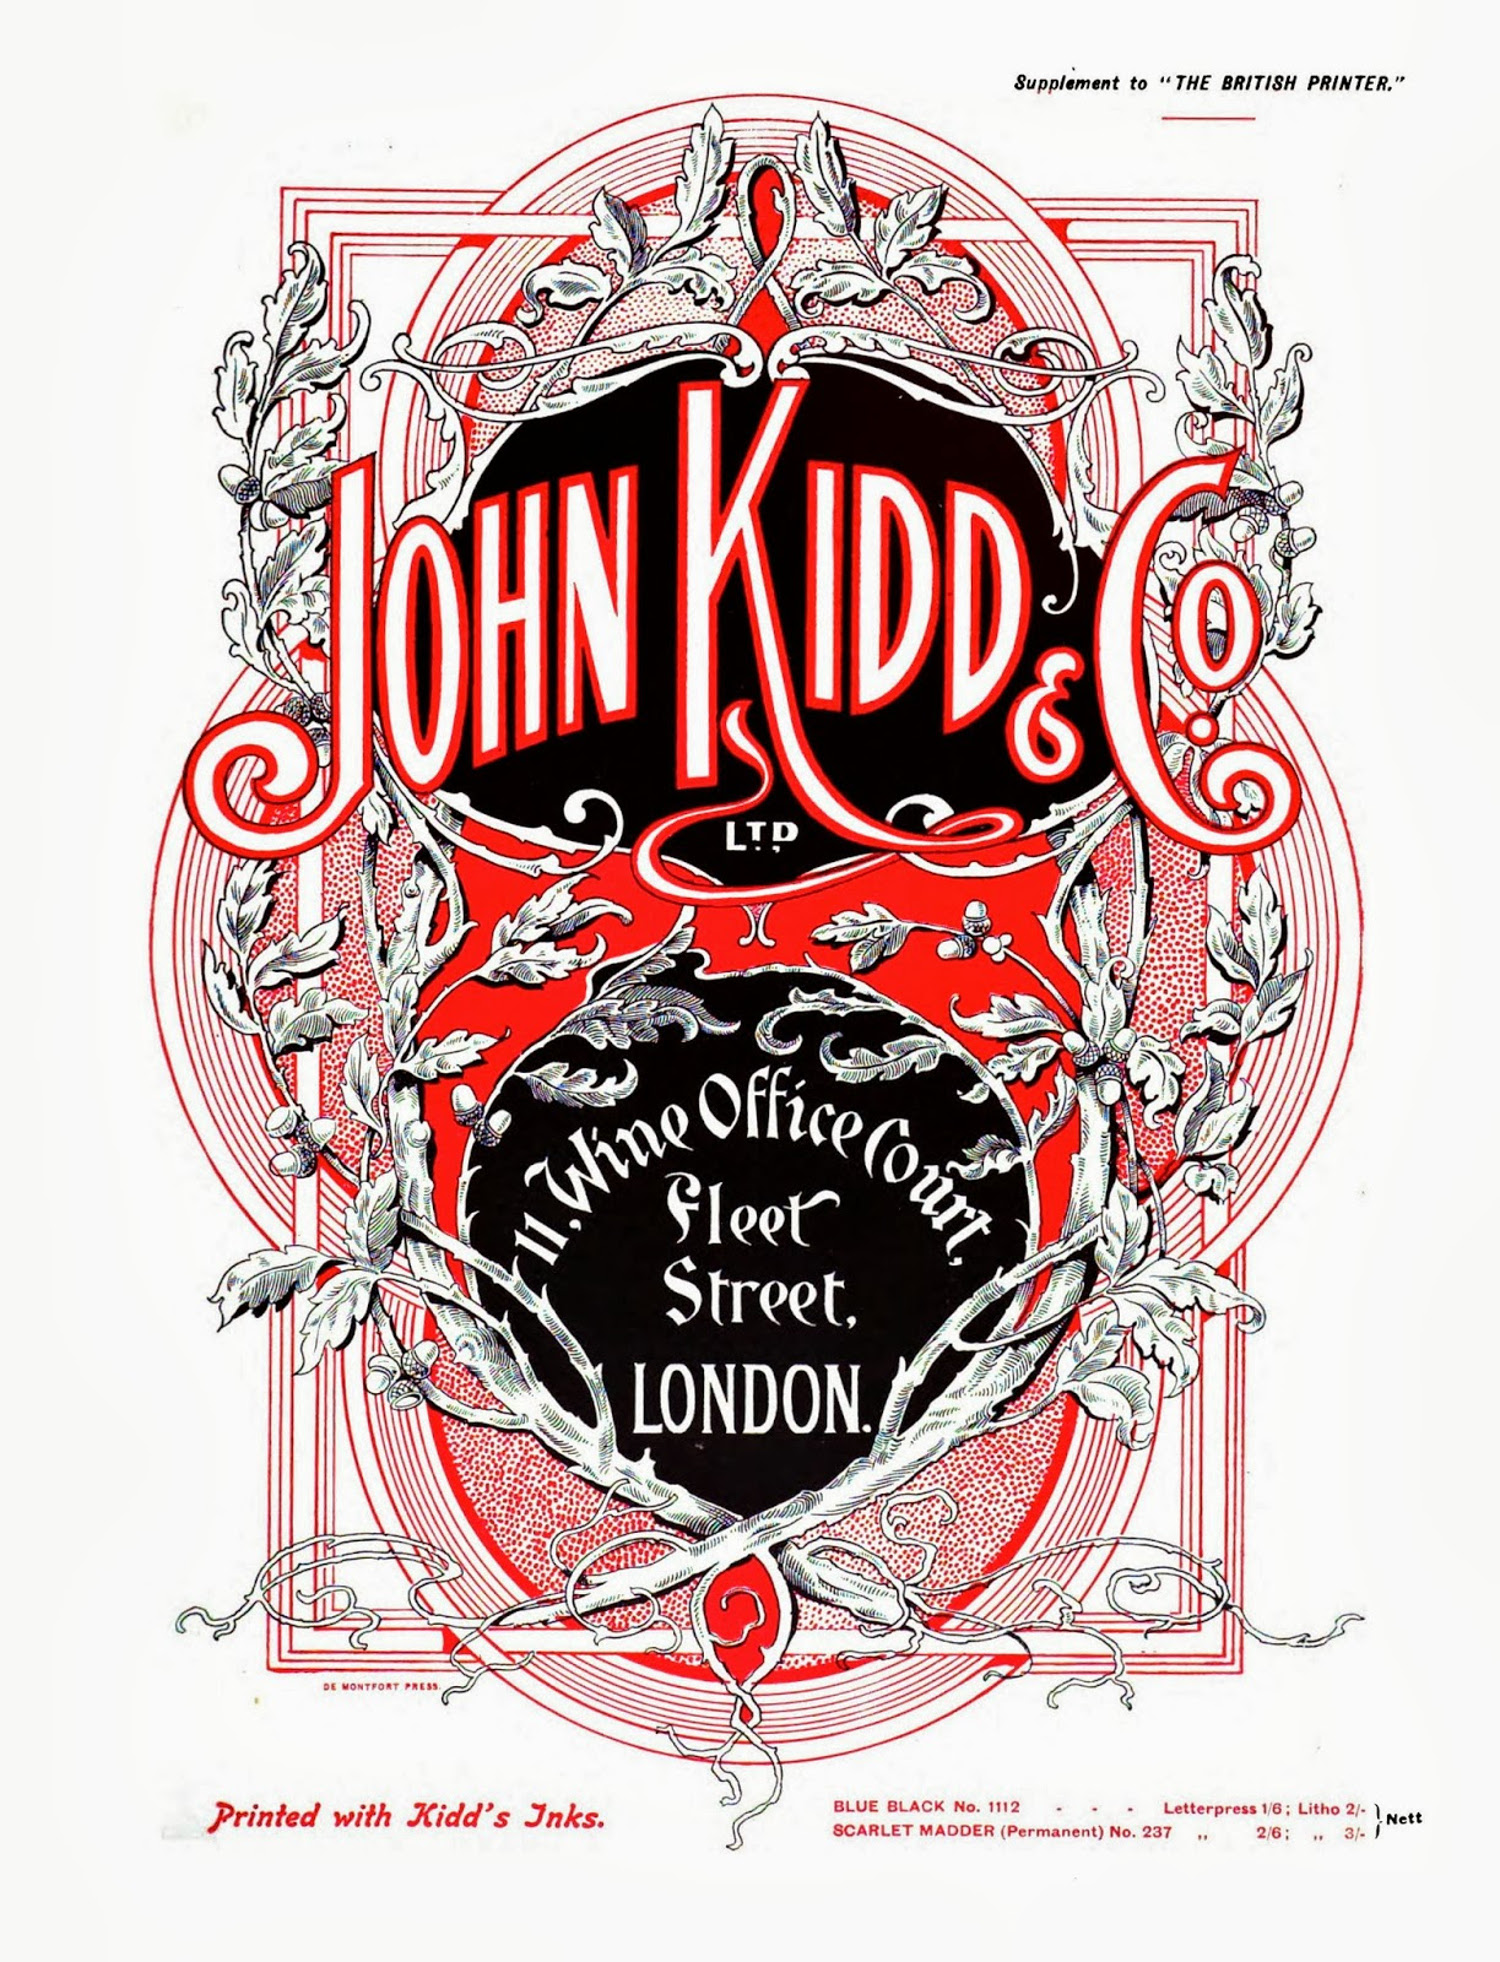 John Kidd & Co advertisement in The British Printer